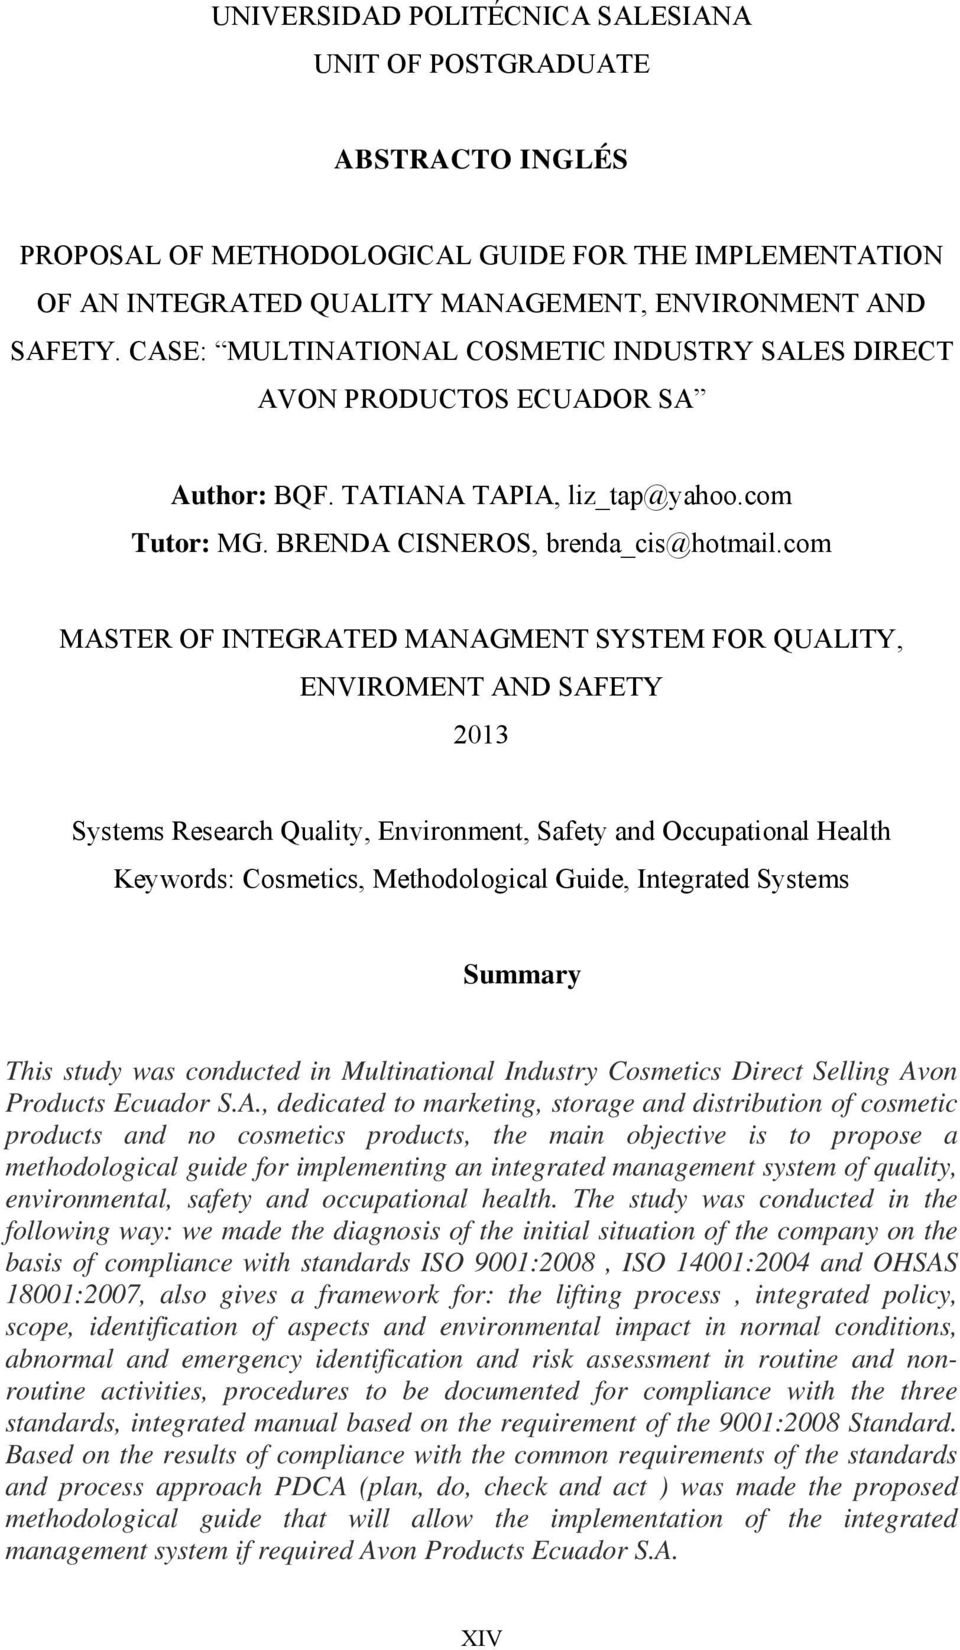 com MASTER OF INTEGRATED MANAGMENT SYSTEM FOR QUALITY, ENVIROMENT AND SAFETY 2013 Systems Research Quality, Environment, Safety and Occupational Health Keywords: Cosmetics, Methodological Guide,